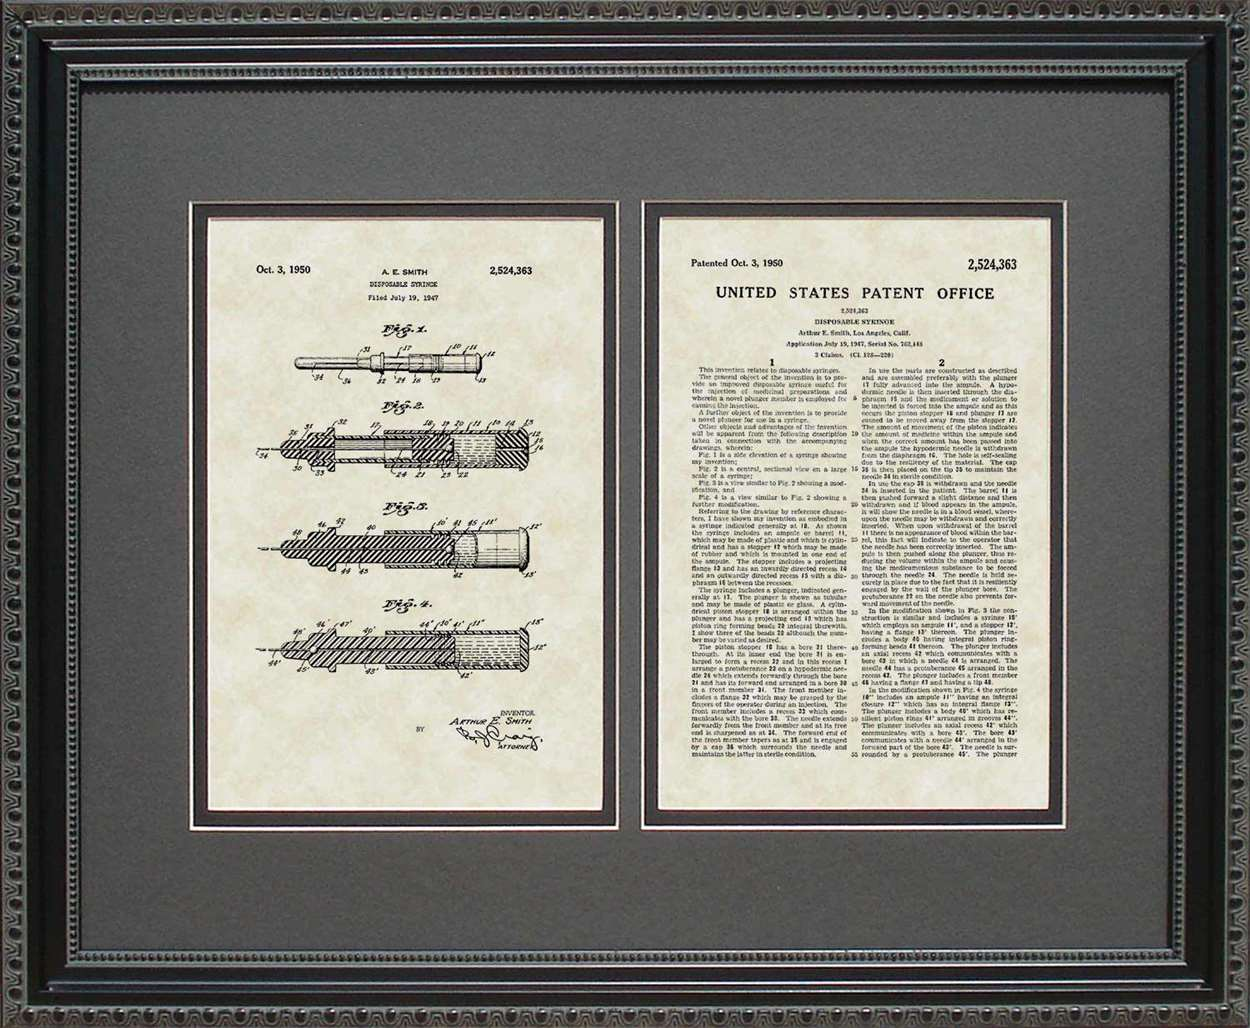 Disposable Syringe Patent, Art & Copy, Smith, 1950, 16x20